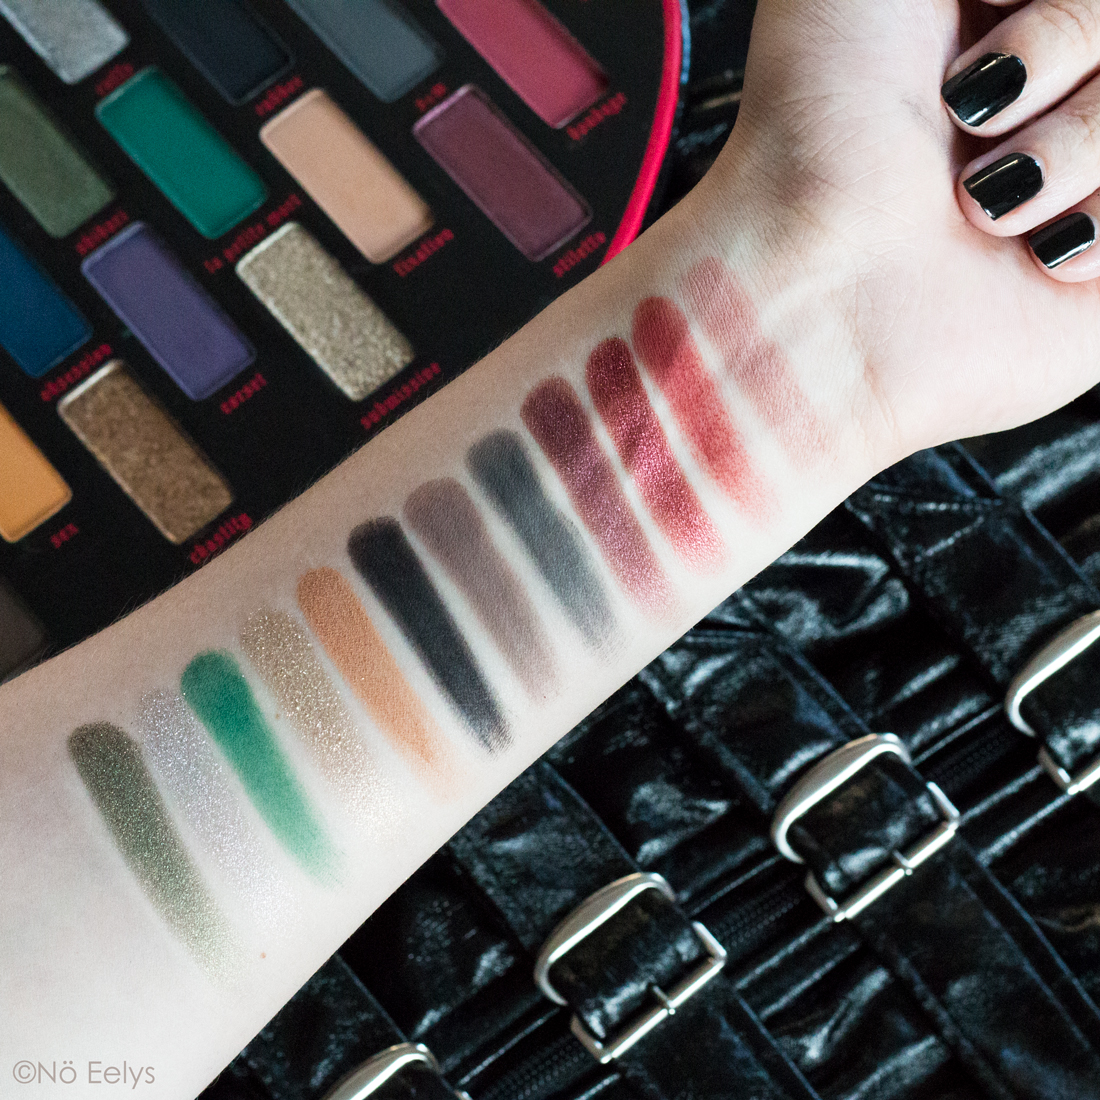 Swatchs de la nouvelle palette Fetish Kat Von D beauty : Shibari, Cuffs, La petite mort, Submissive, Rubber, Fixation, Knotty, s&m, stiletto, dominatrix, bondage, safe word